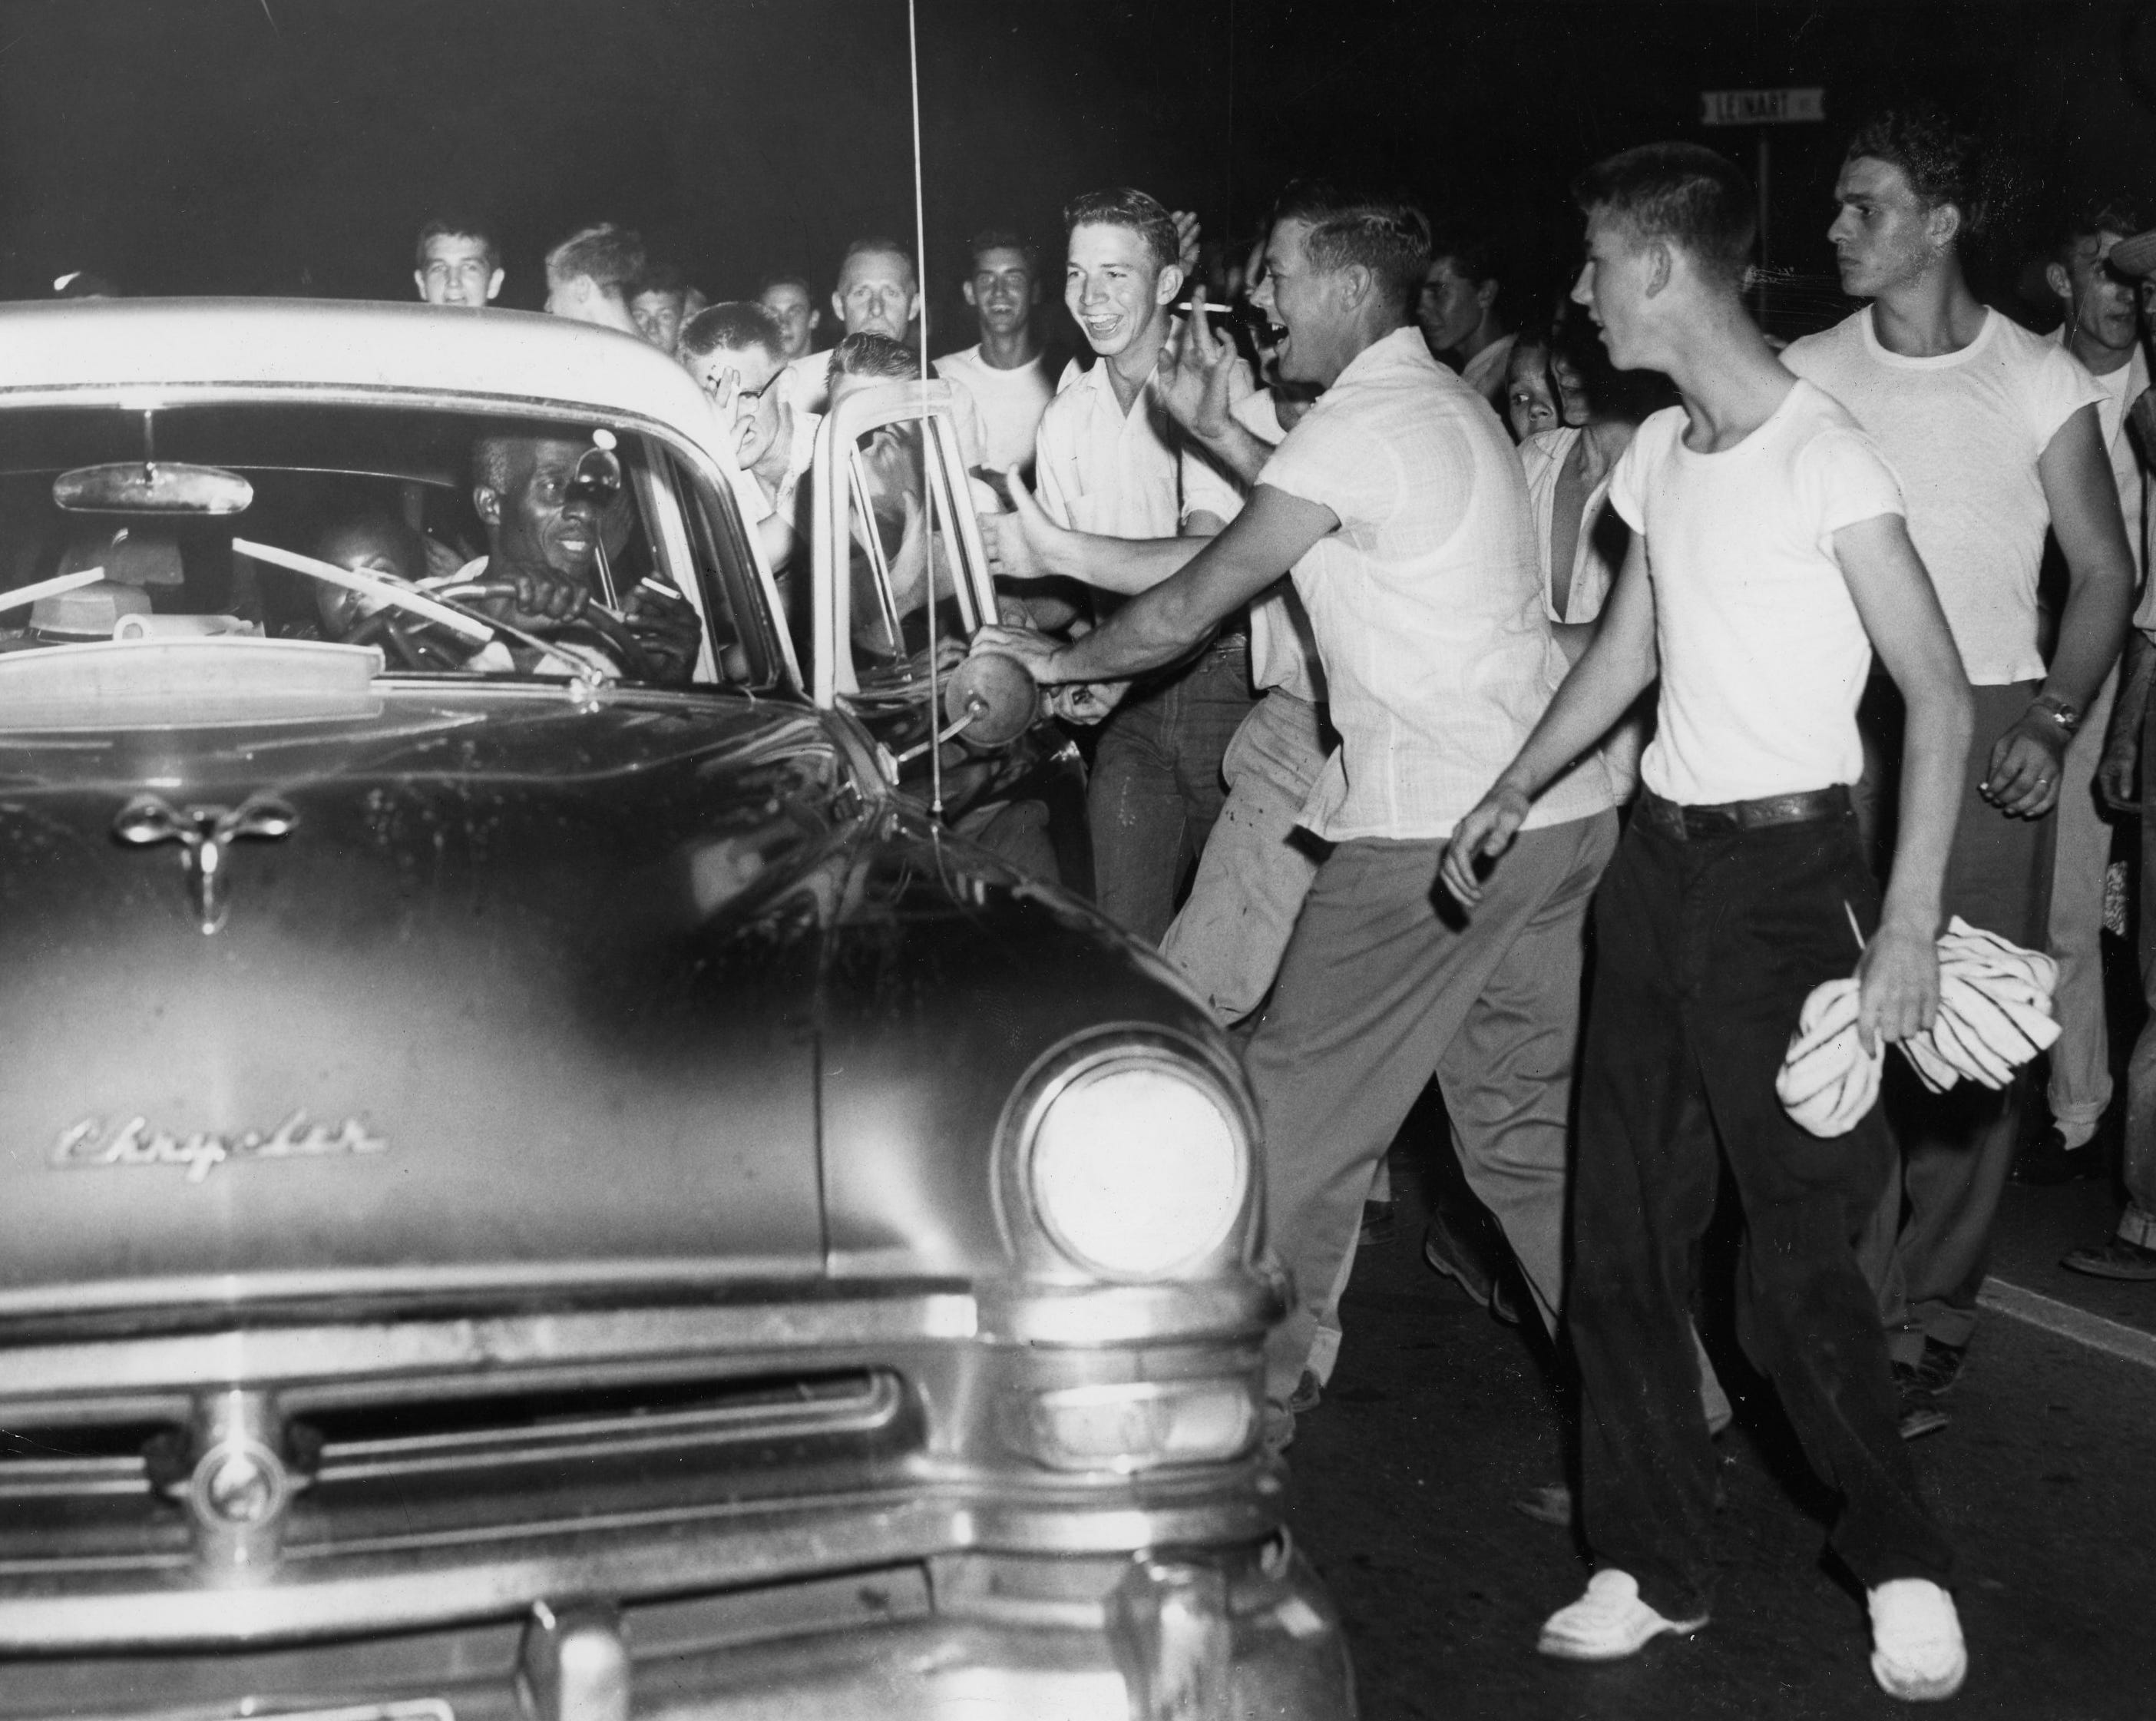 The mob descends on an Ohio car, its first, last night. The driver kept smiling despite the jostling he and the other occupants received before he succeeded in speeding away. Dated: Sept. 1, 1956.